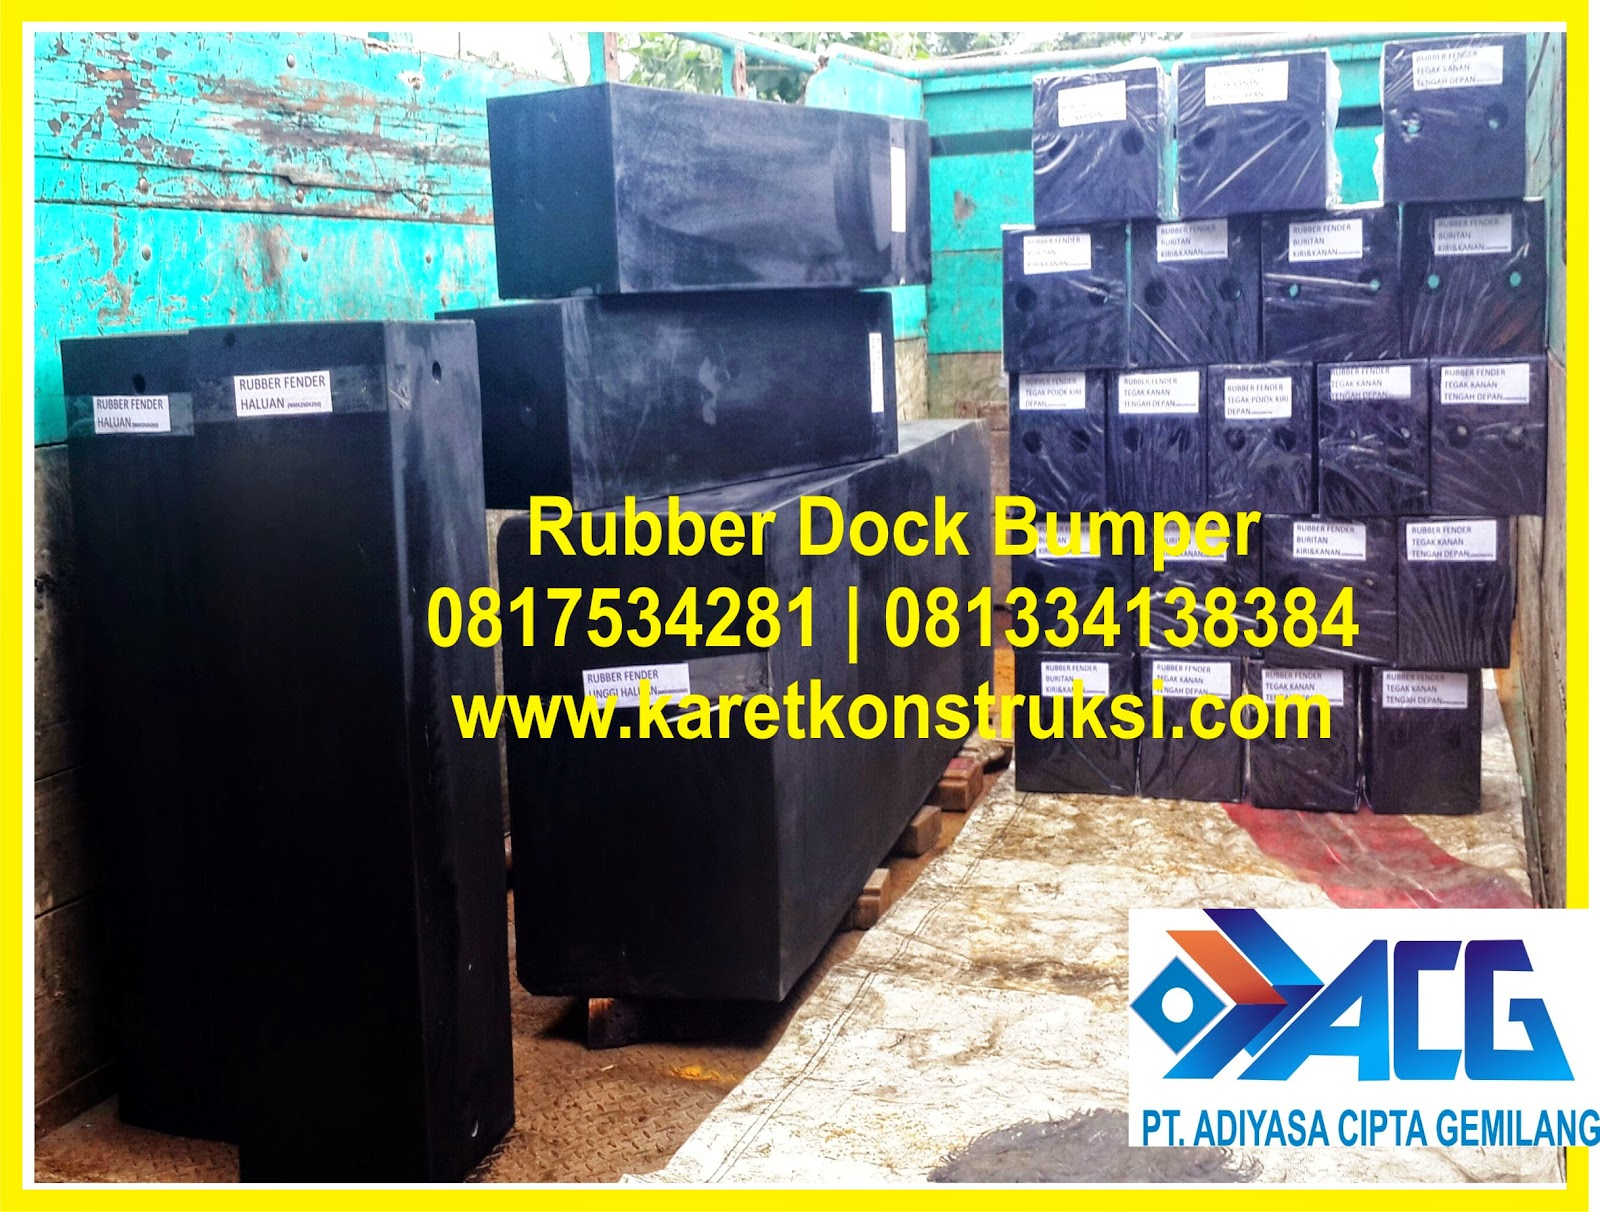 Jual rubber dock , Harga rubber dock bumper , rubber dock fender , rubber dock bumpers truck , rubber dock bumpers suppliers